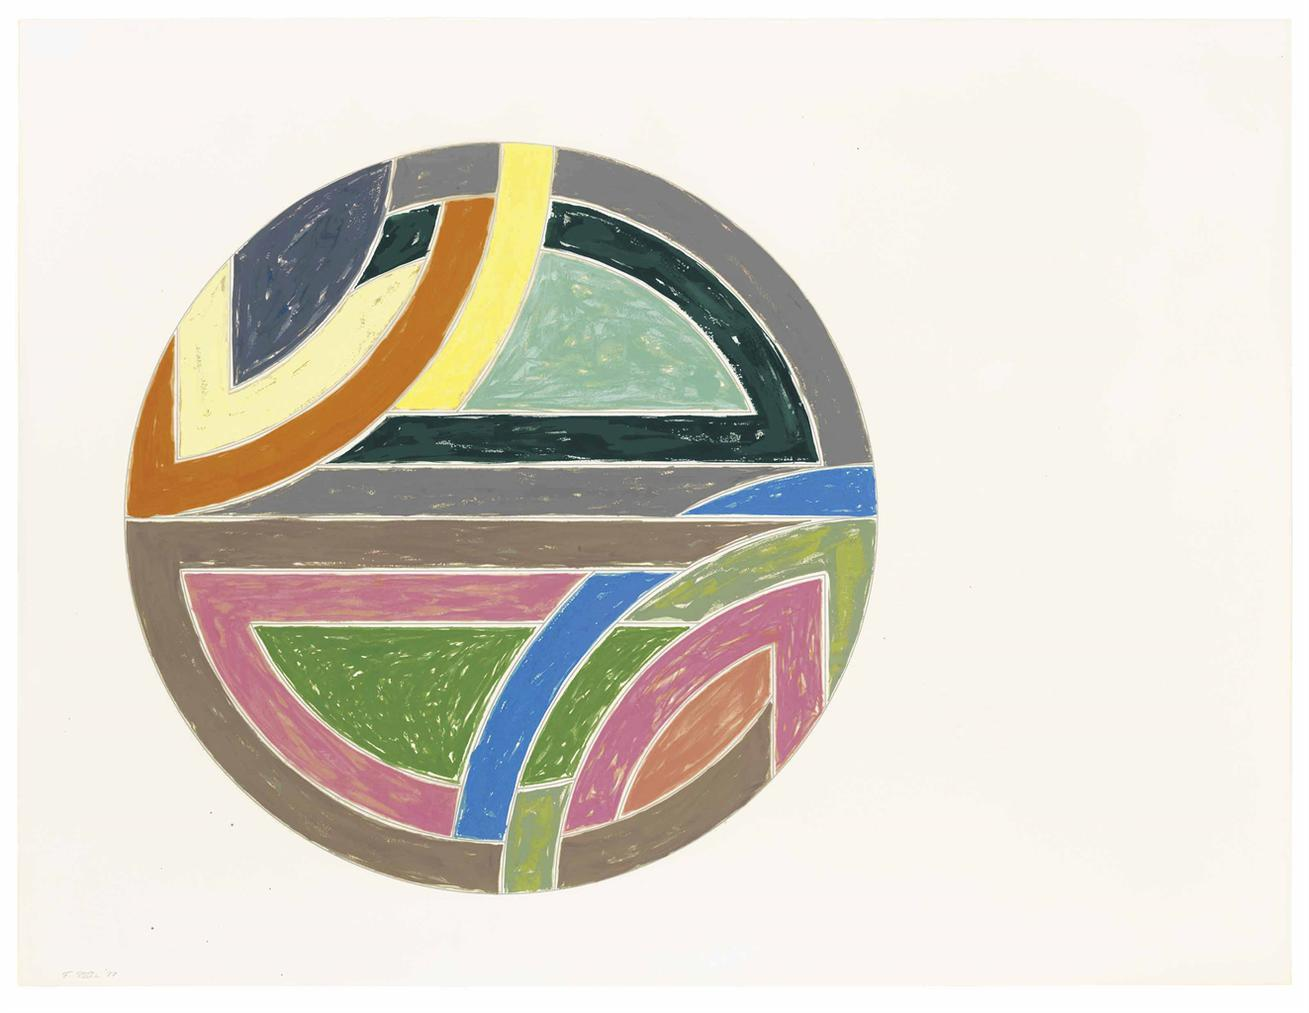 Frank Stella-Untitled-1977